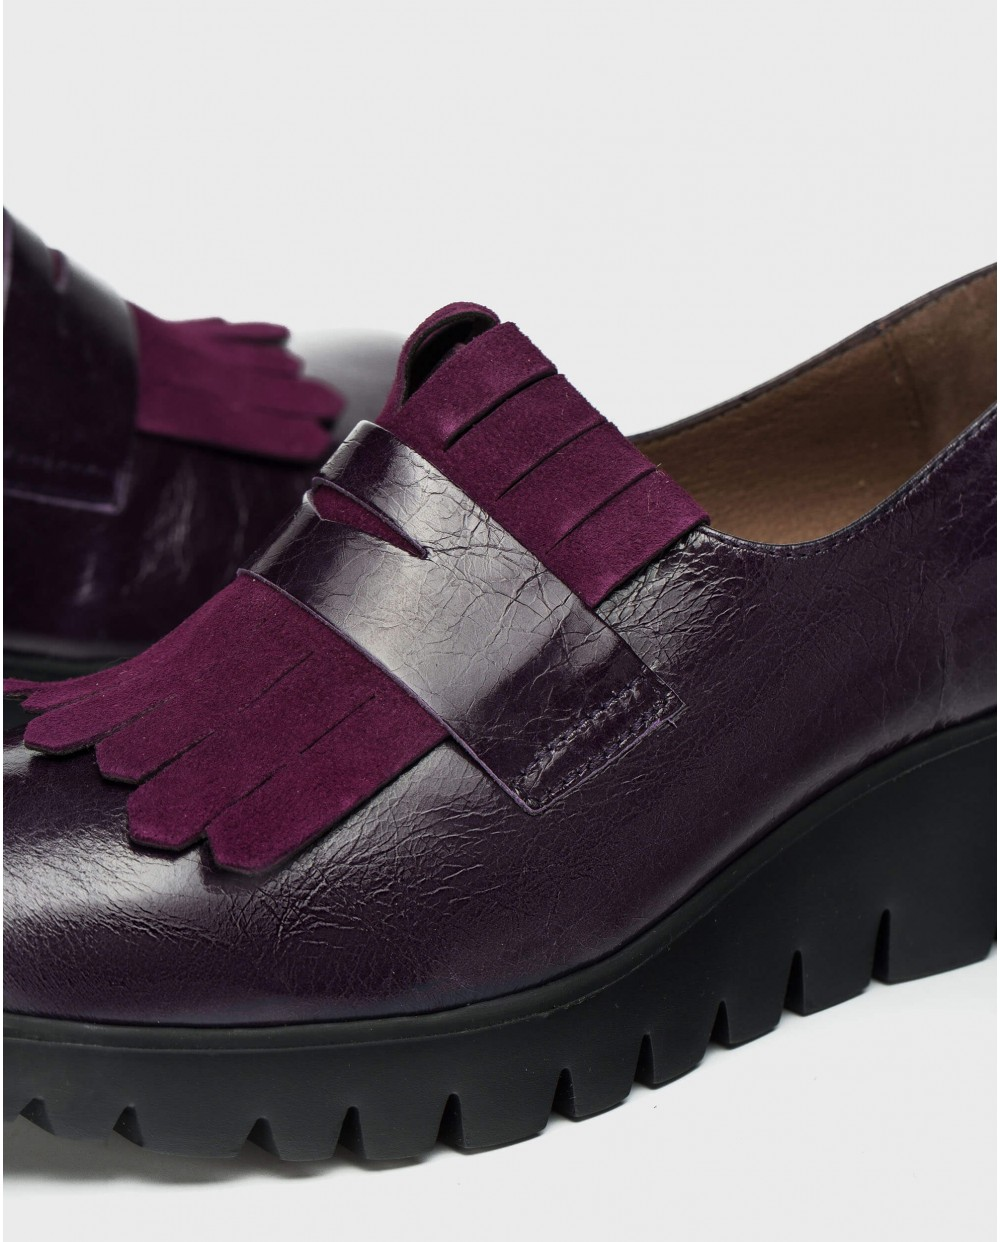 Leather moccasin with fringe